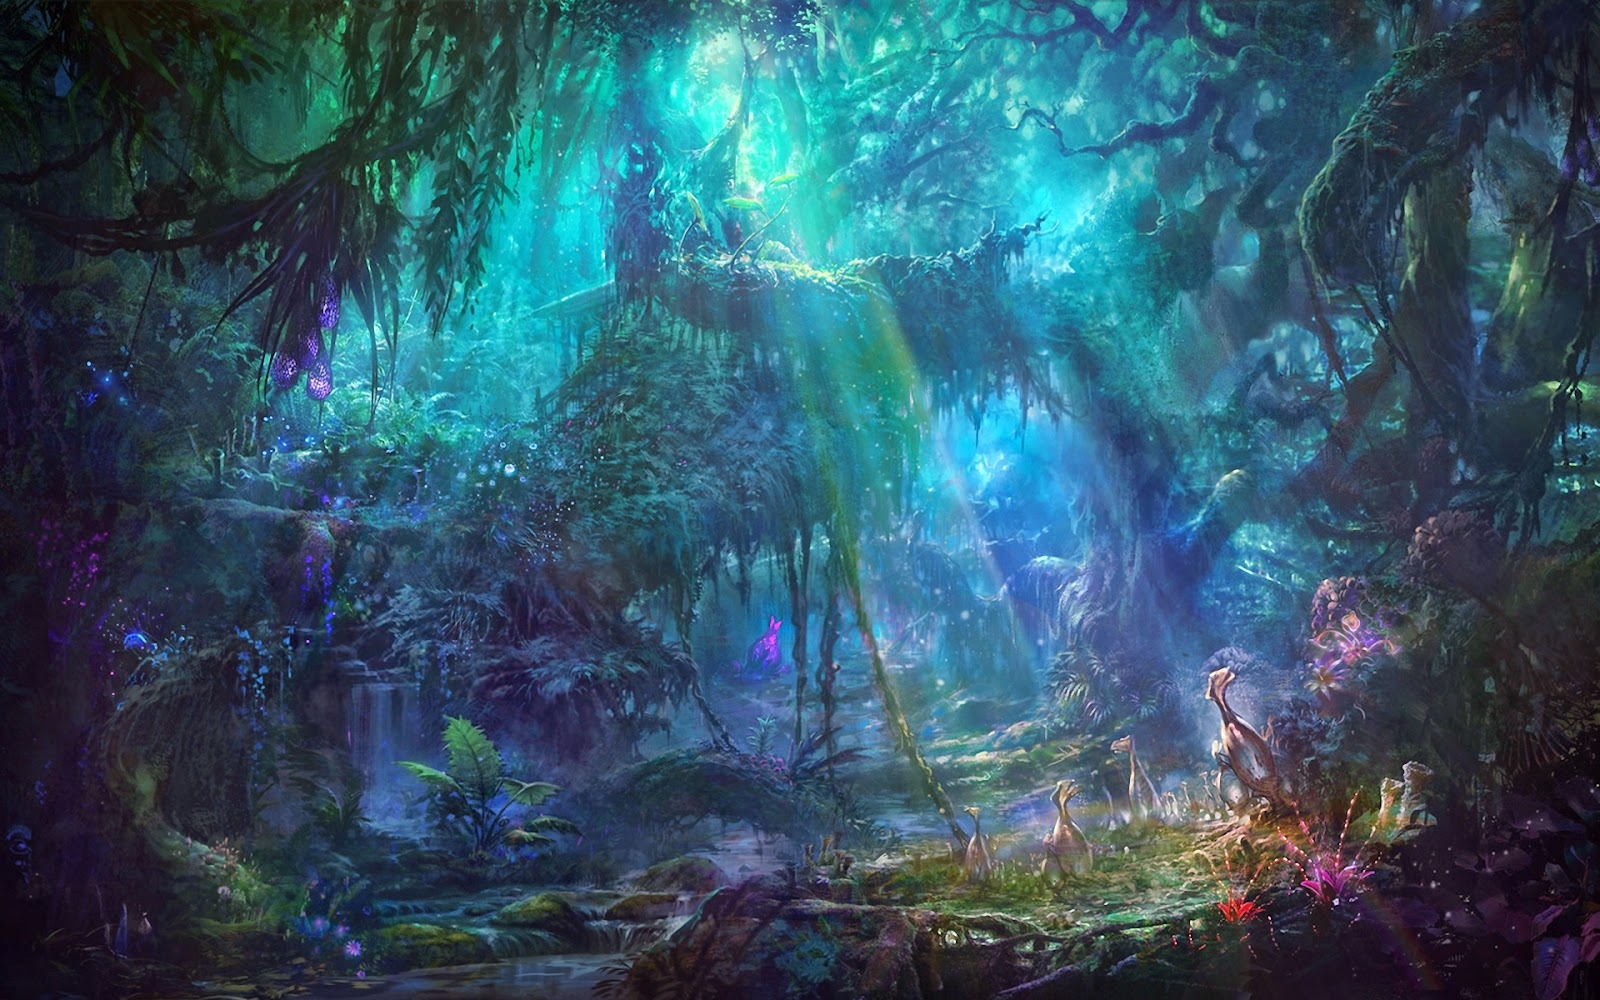 Beautiful Fantasy hd wallpapers images - HD Wallpapers